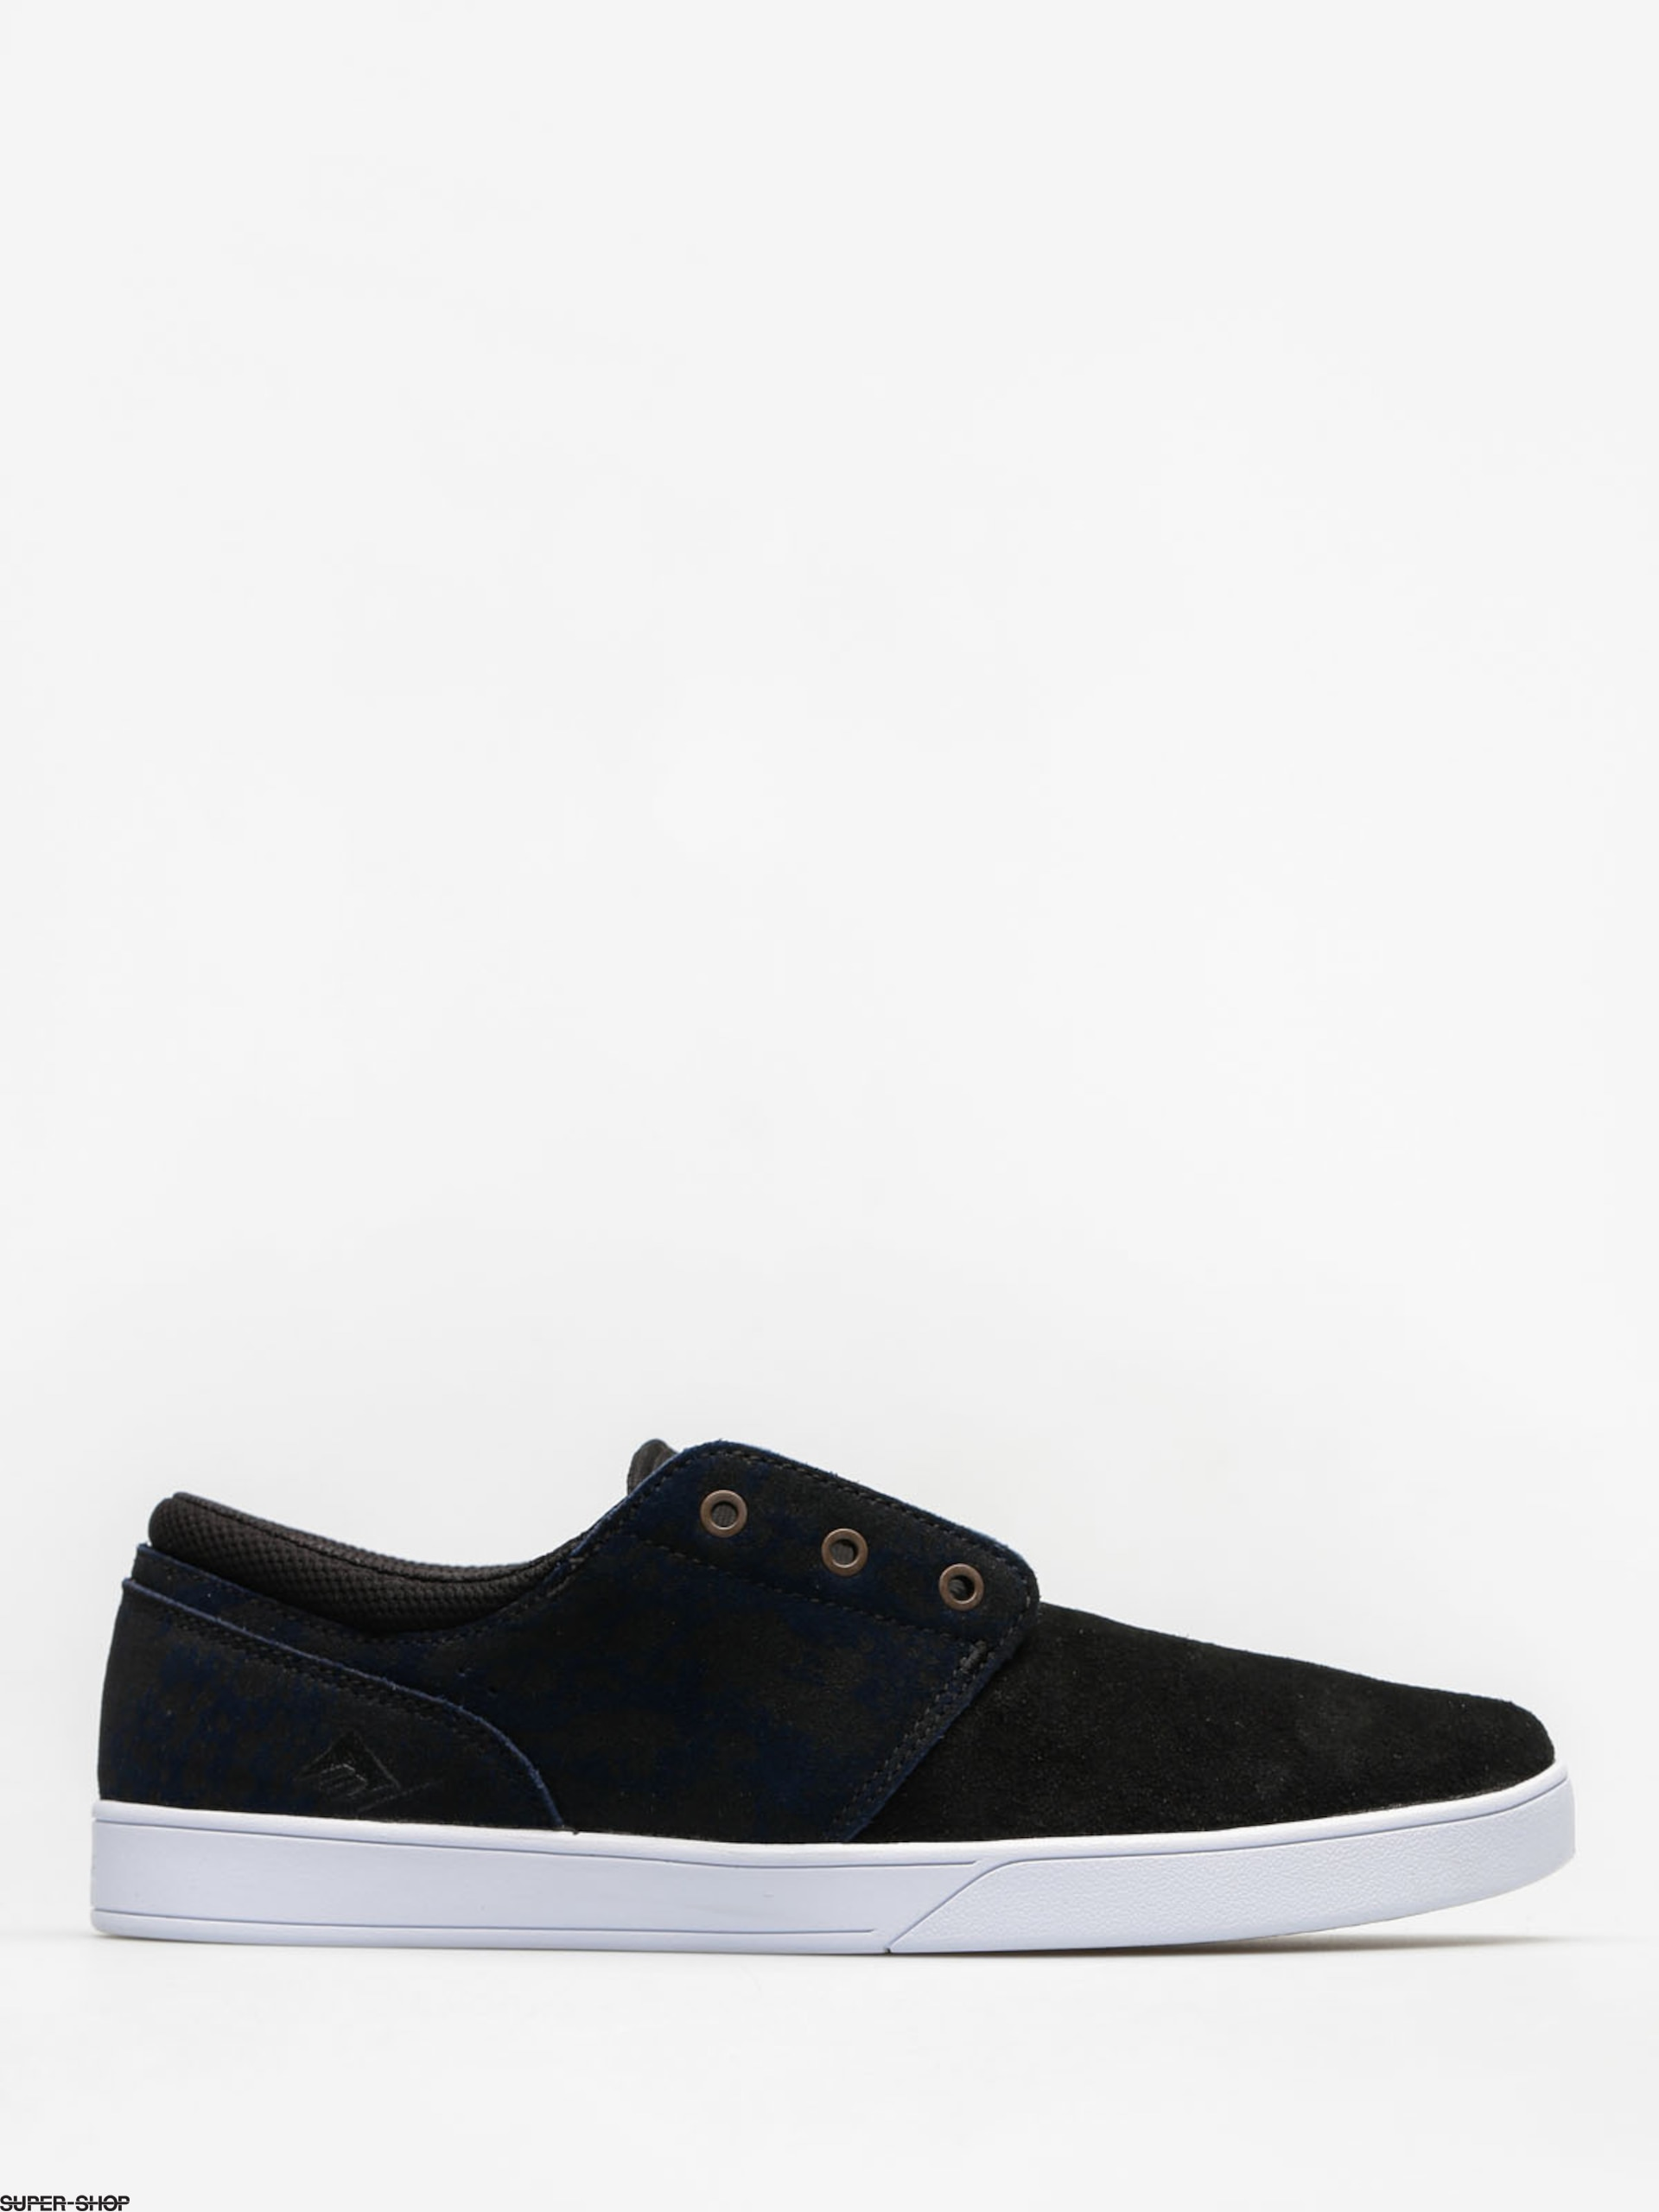 Emerica Schuhe The Figueroa (navy/black)